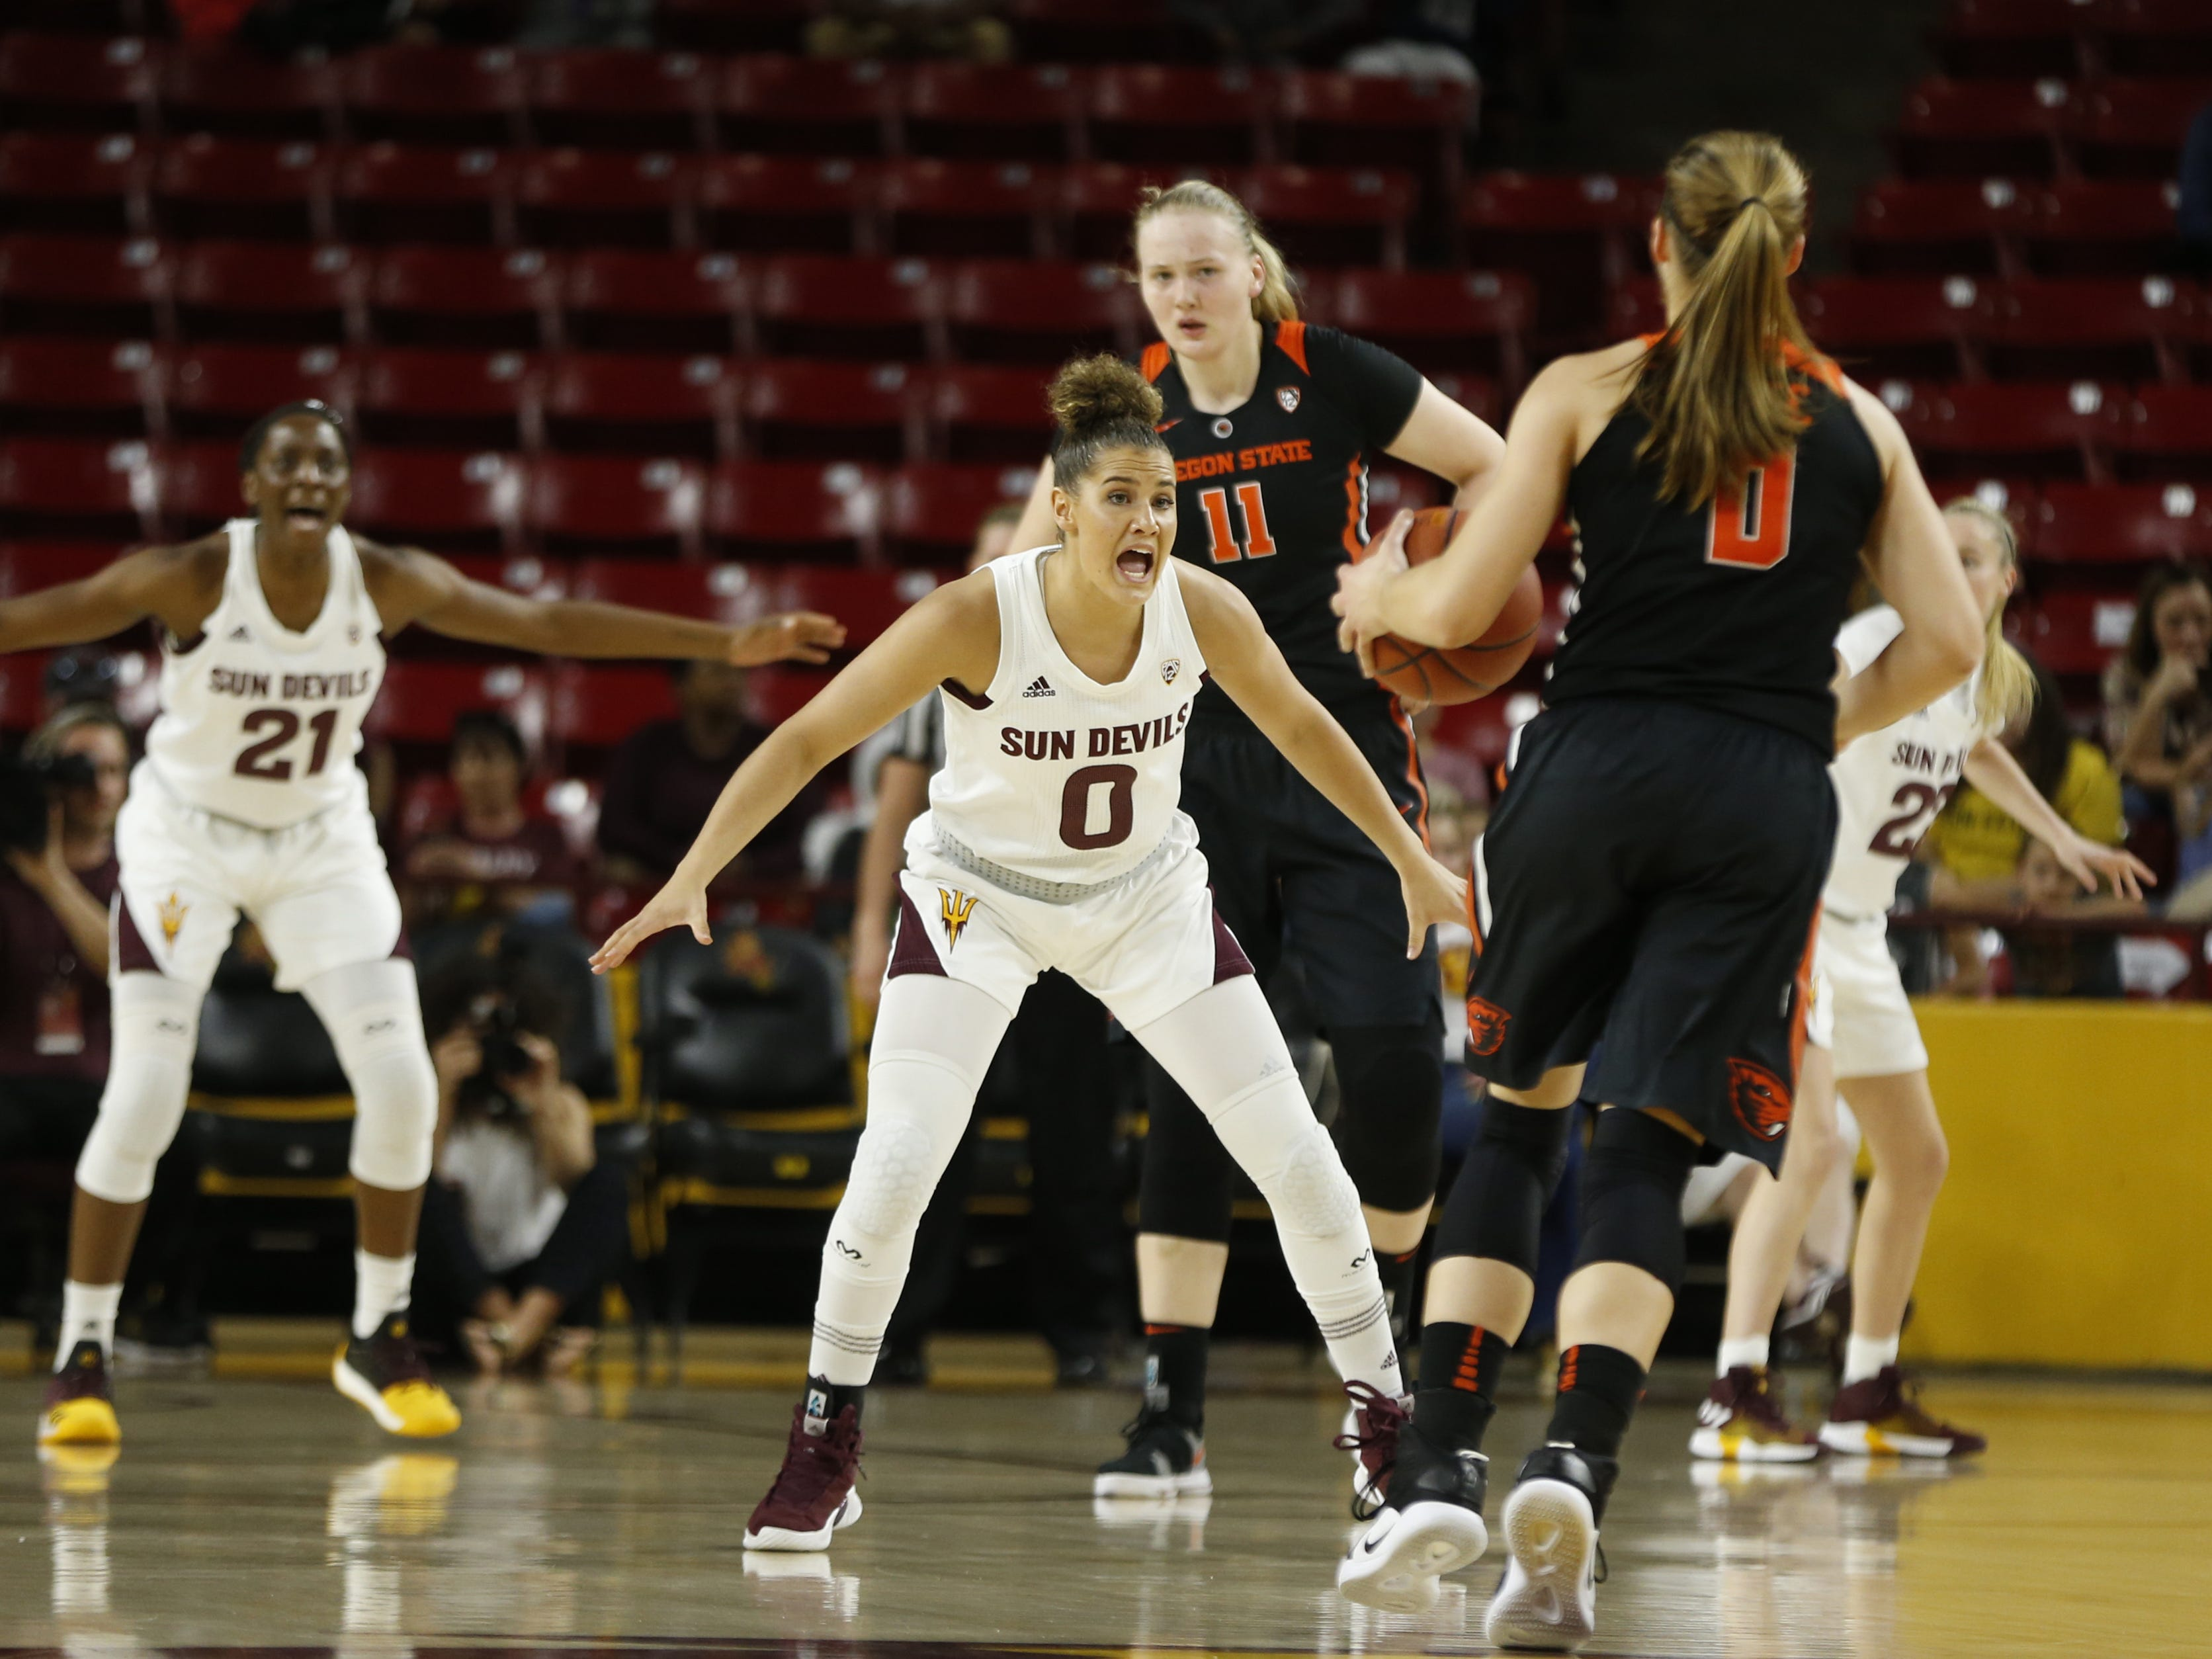 ASU's Taya Hanson (0) defends Oregon State's Mikayla Pivec (0) during the first half at Wells Fargo Arena in Tempe, Ariz. on March 1, 2019.